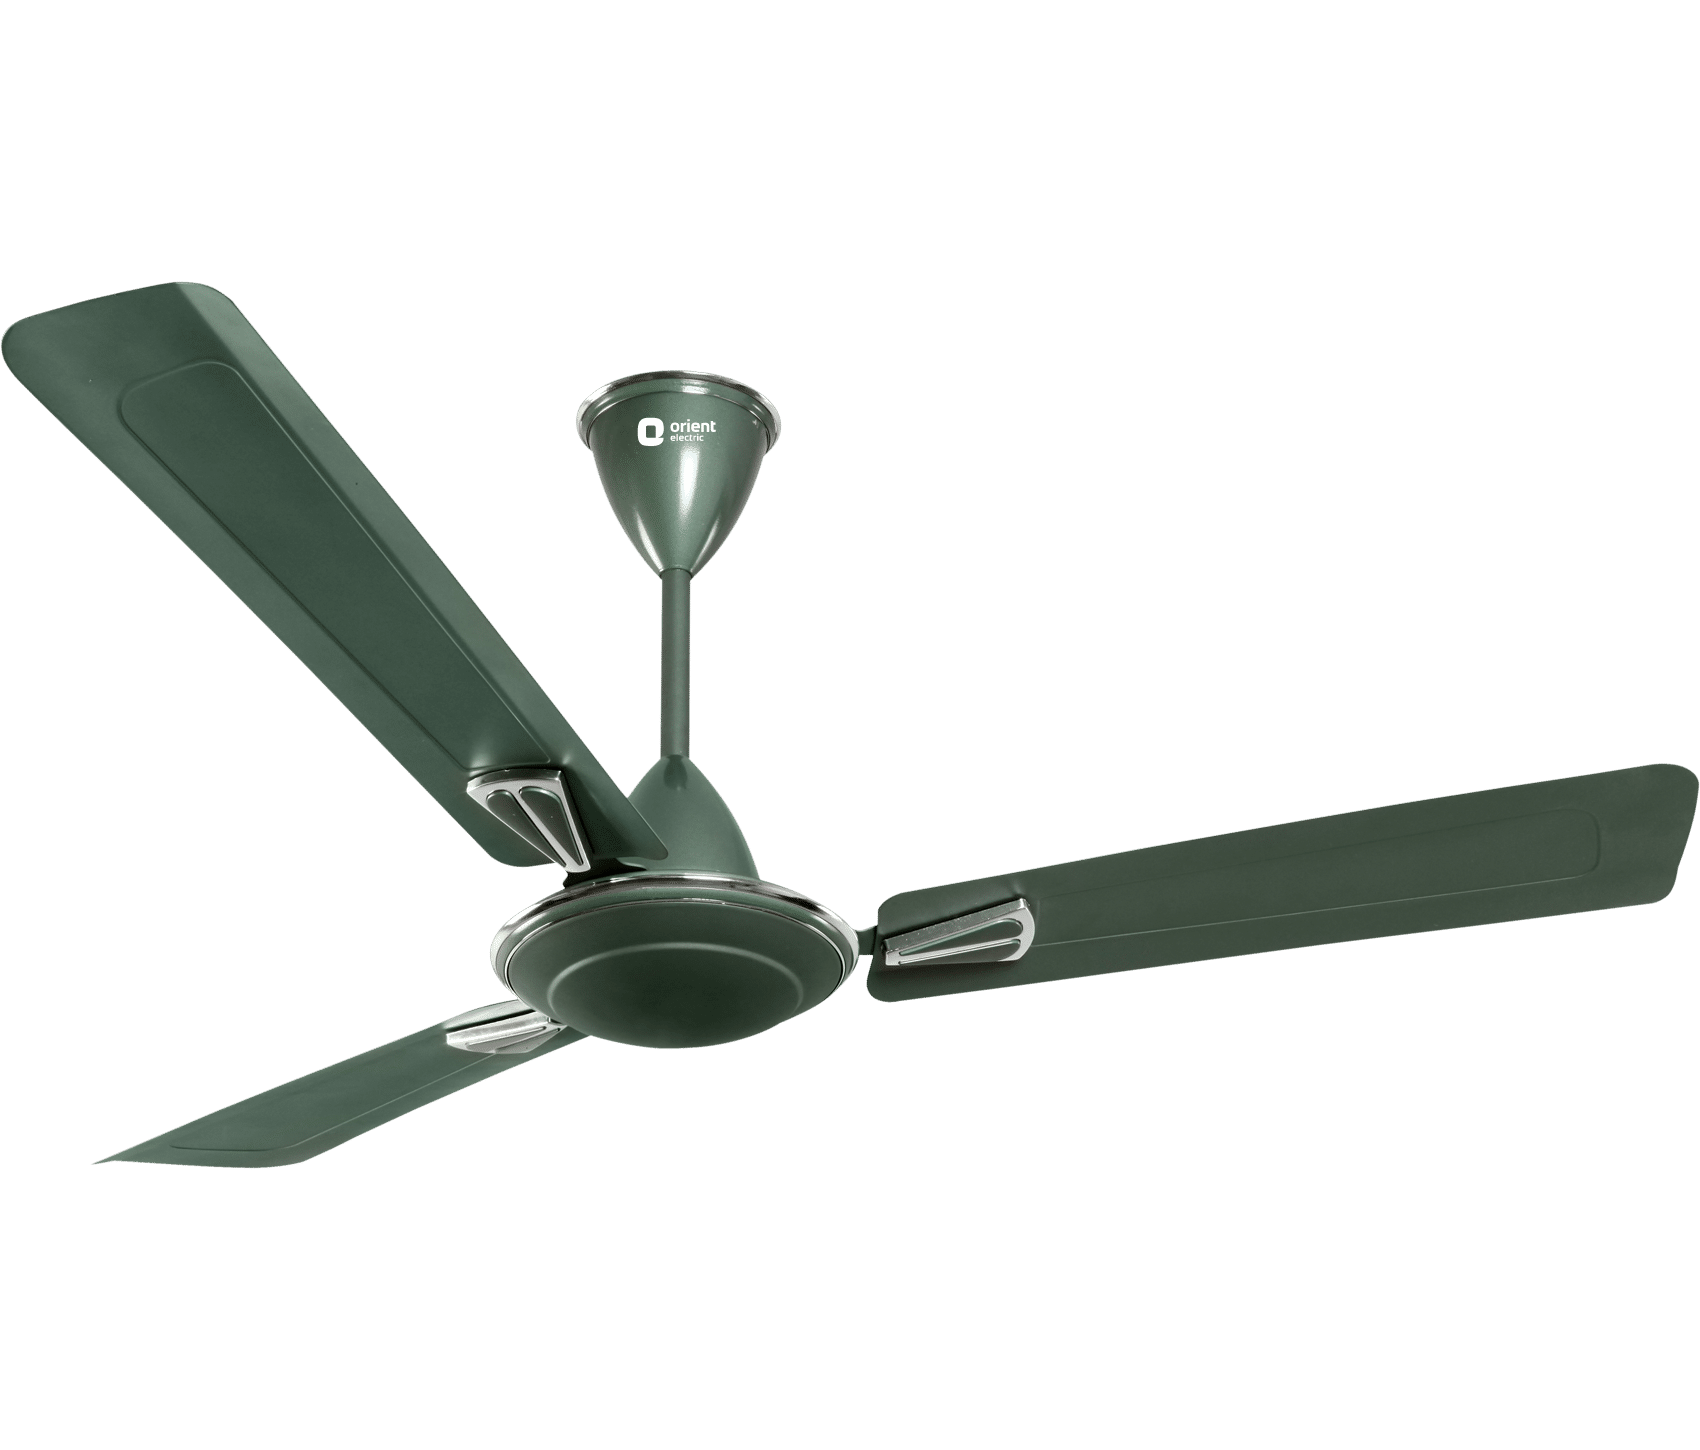 Orient Adonis Ceiling Fan Sd 320 Rpm Colour Jade Green At Rs 1643 Electricals Fans Only On Supplybasics India